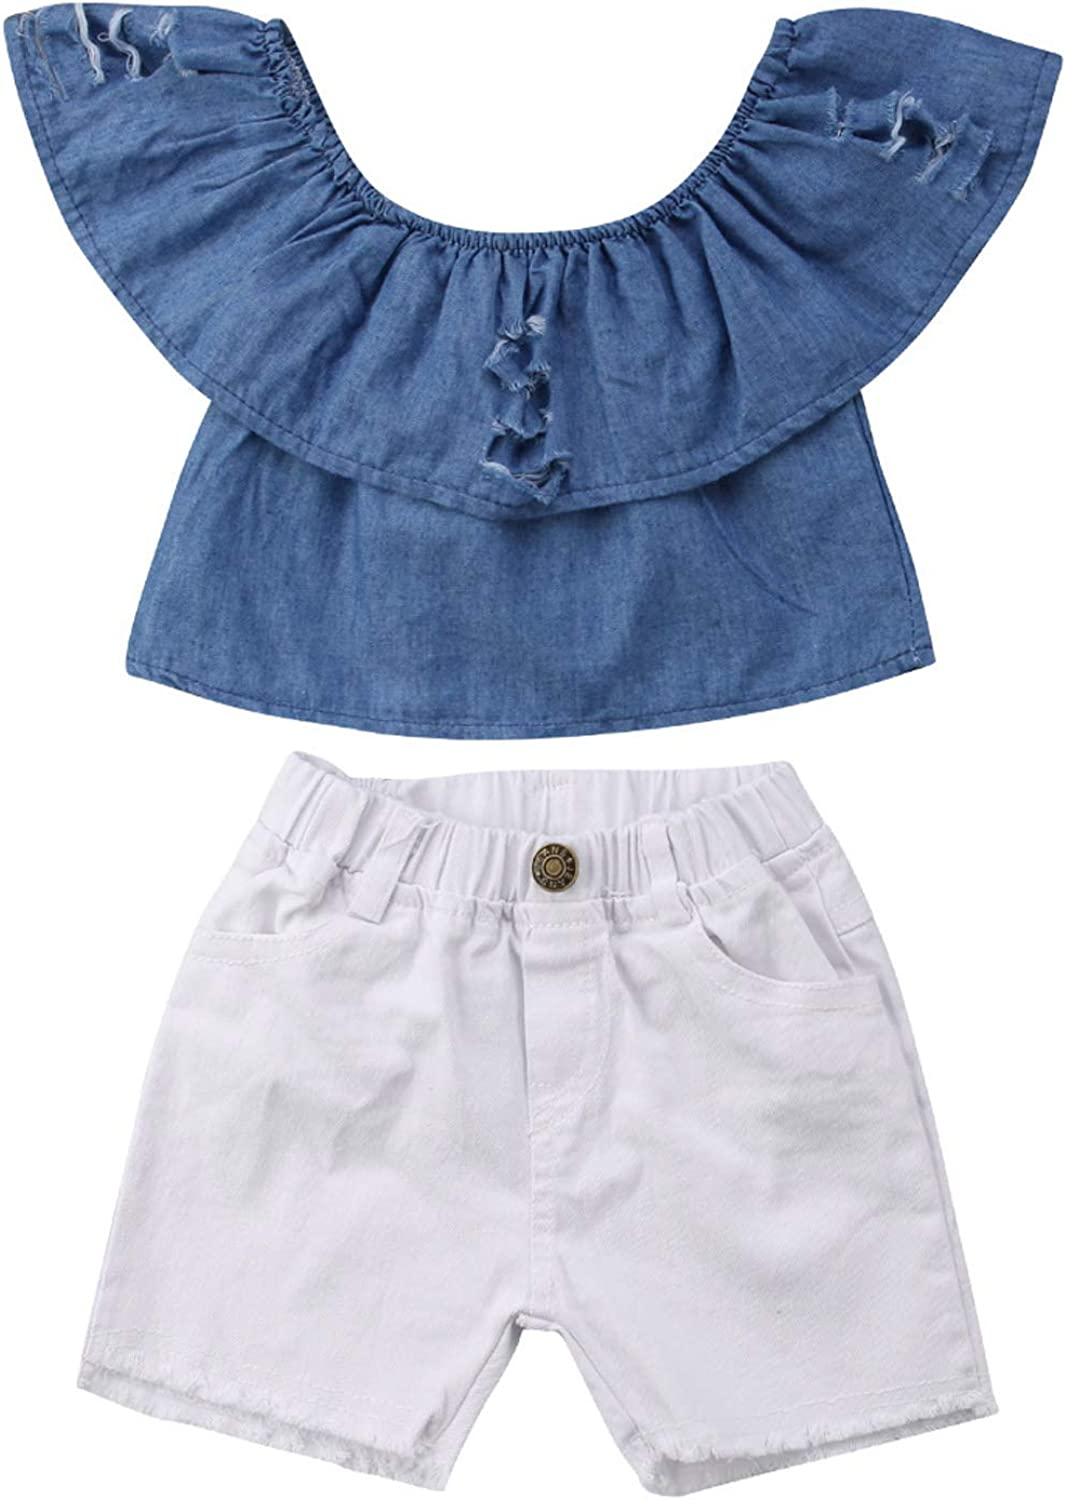 Short Toddler Summer Clothes Baby Girls Off Shoulder Ruffle Denim Tops Sleeveless Lotus Leaf Collar Crop Tops